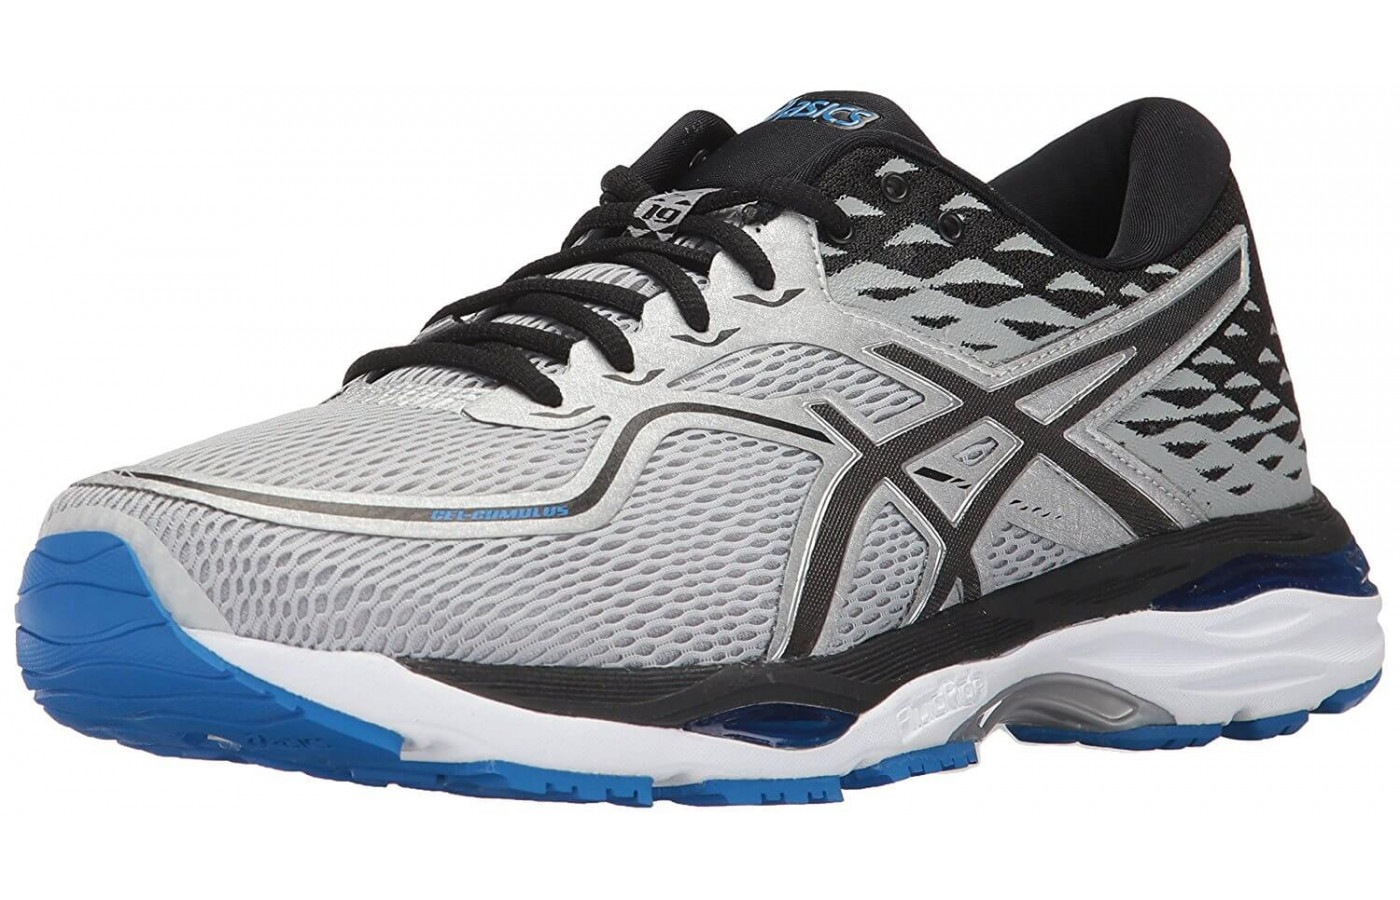 asics gel divide test